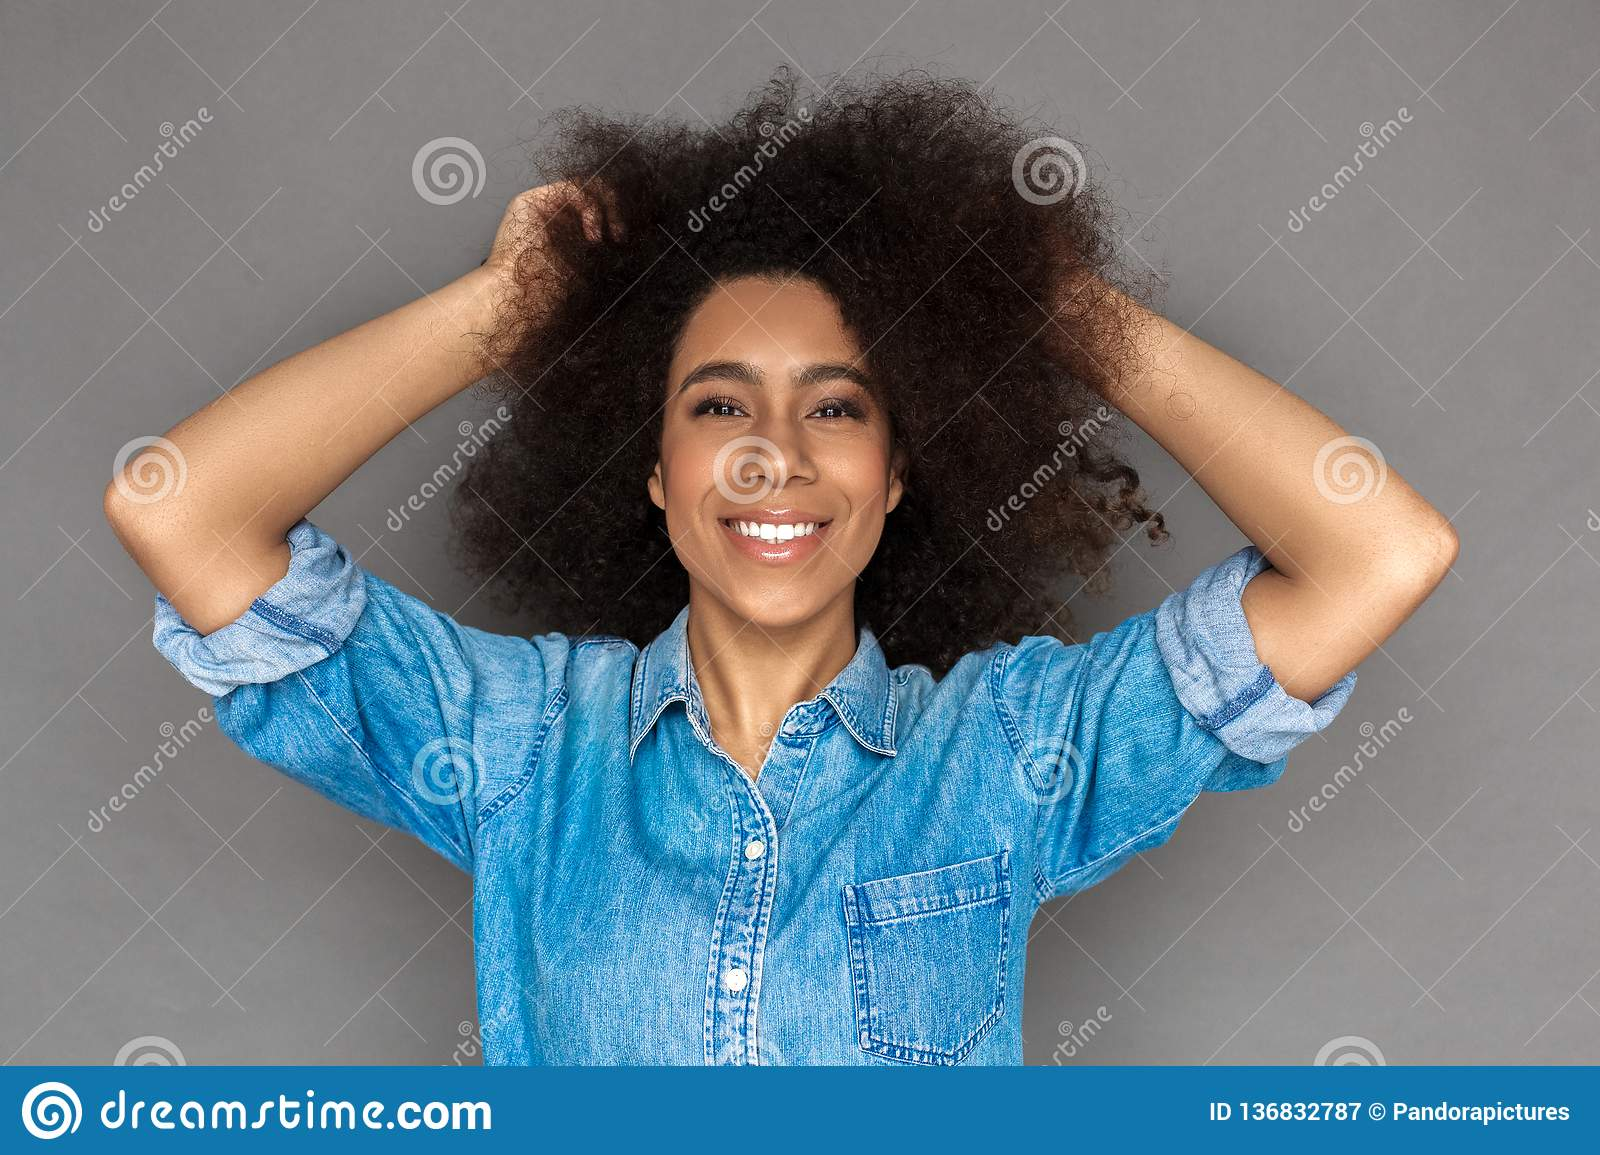 Freestyle. Mulatto woman standing on grey touching hair laughing cheerful close-up